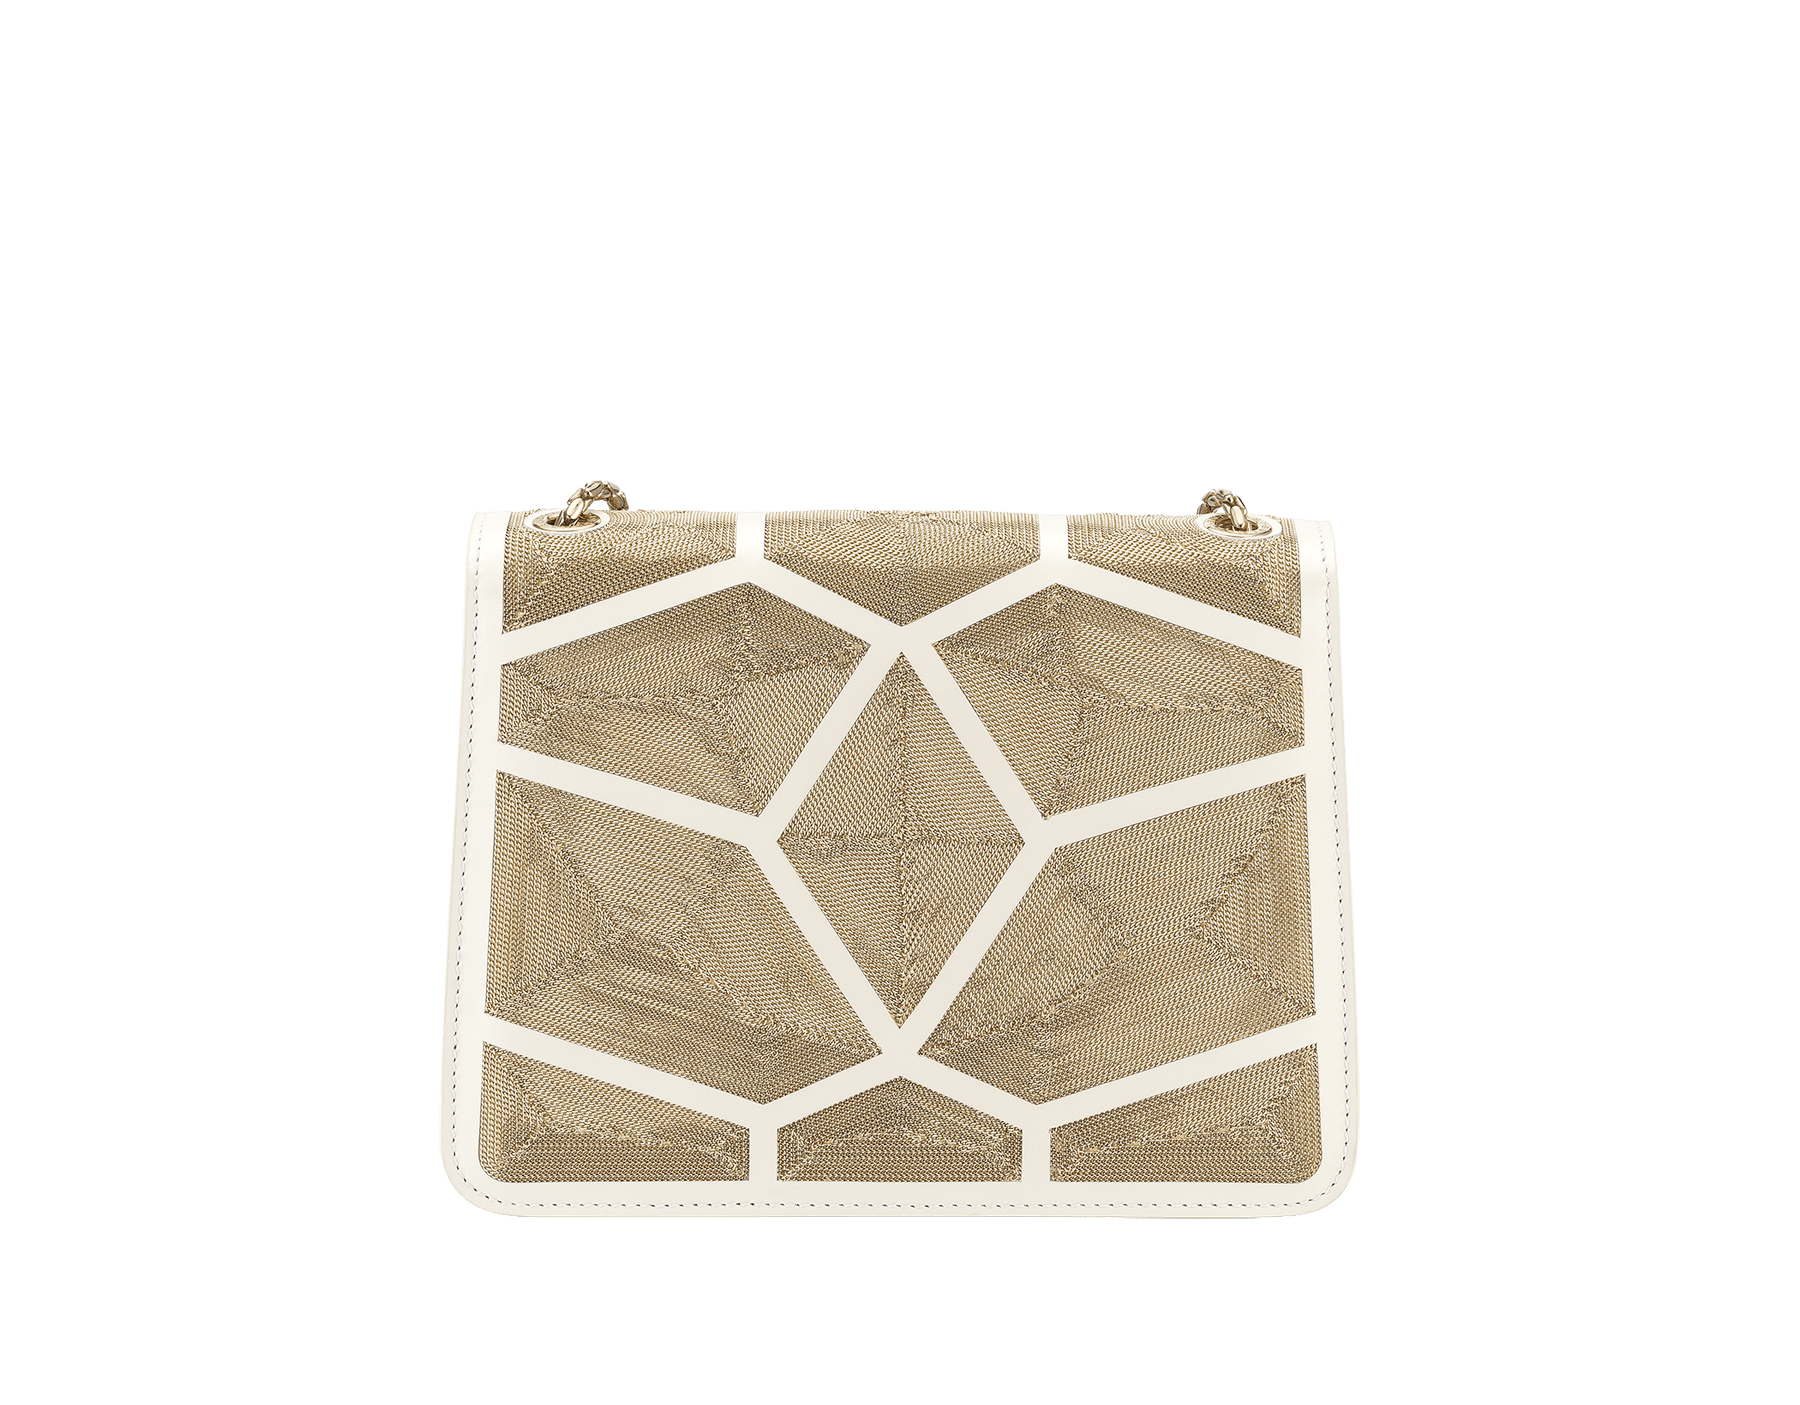 """Serpenti Forever"" crossbody bag in white agate calf leather with ""Million Chain"" décor. Iconic snake head closure in light gold plated brass enriched with black and white agate enamel, and black onyx eyes. 288907 image 3"